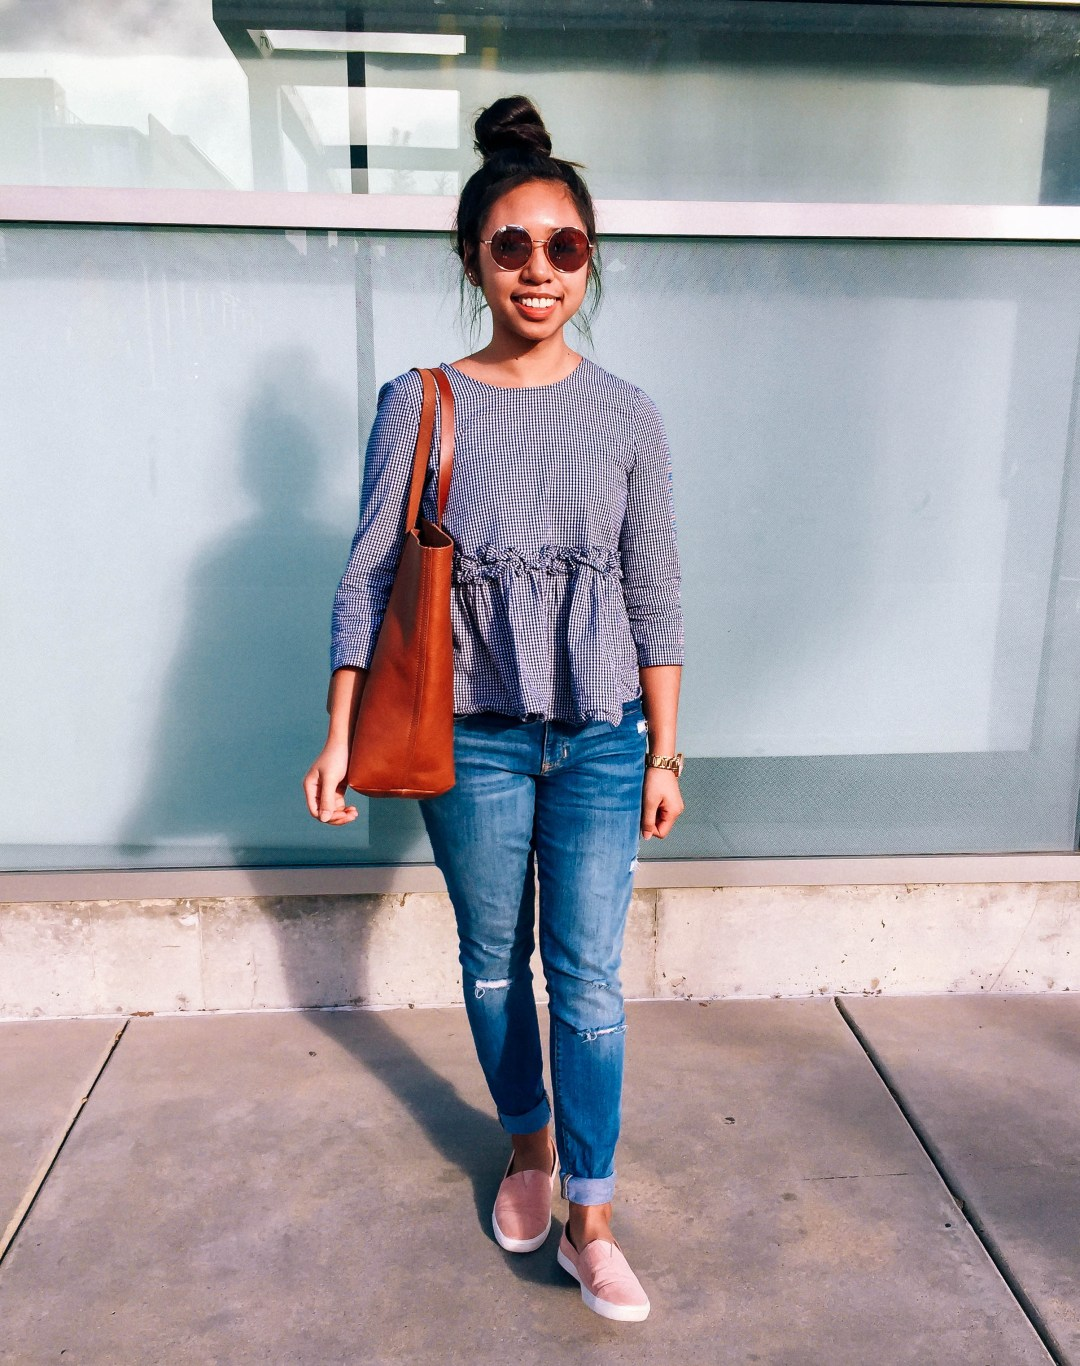 FullSizeRender 23 - What I Wore This Week in College | Spring Outfits for School